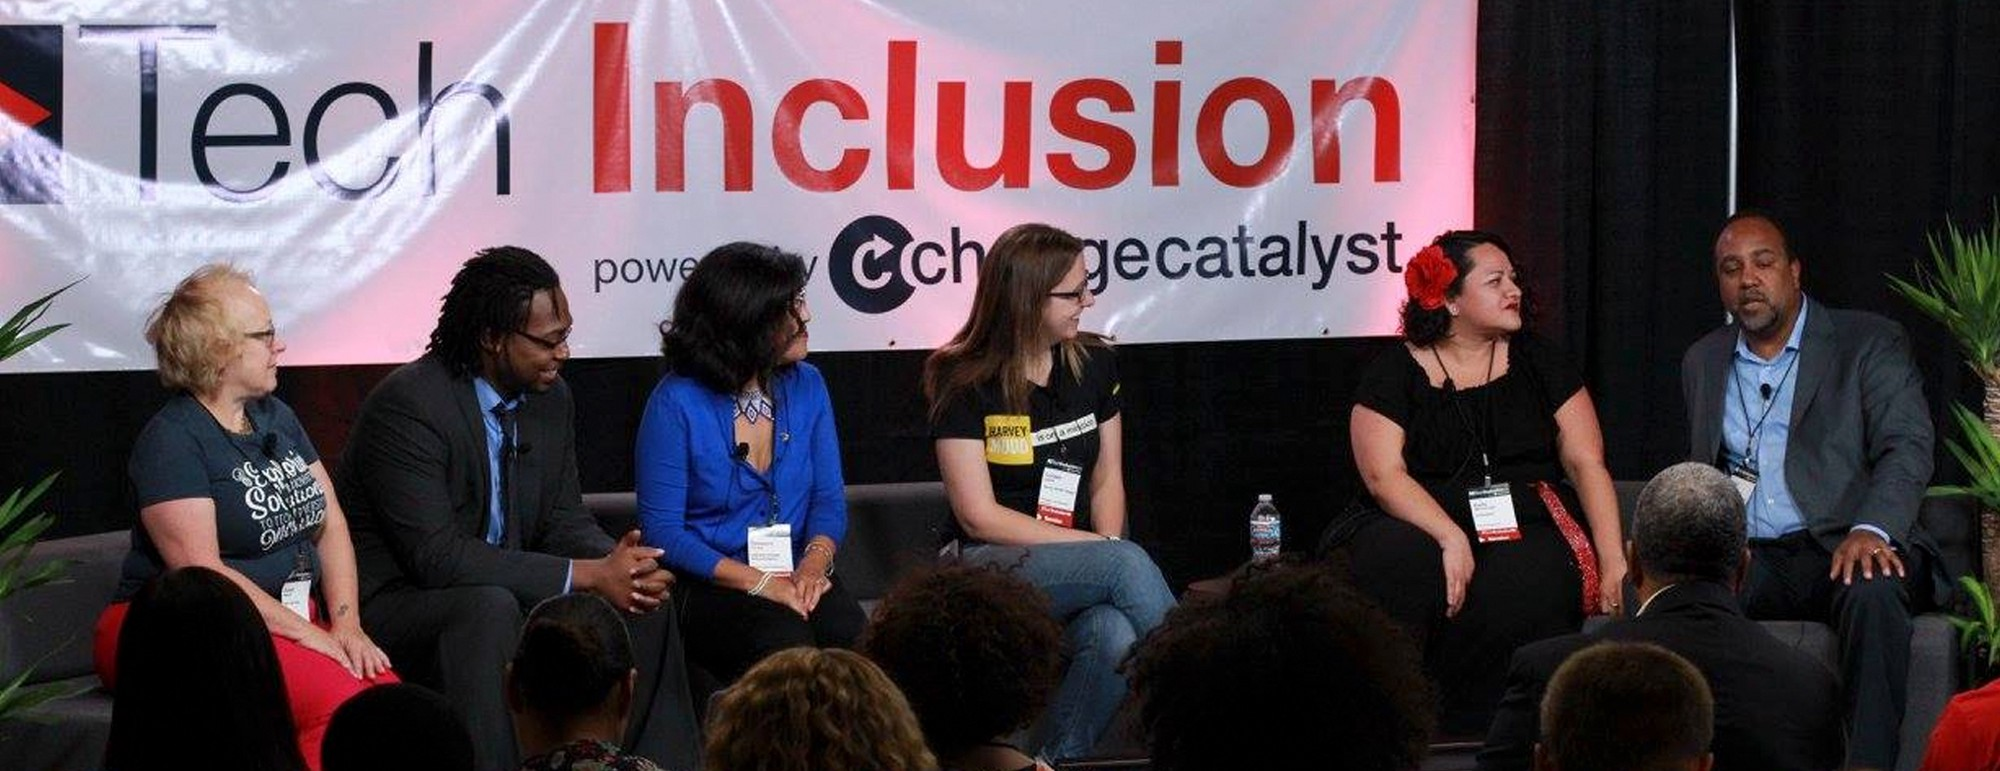 Tech Inclusion Solution: Day 38: Training on Gender Interactions In The Workplace